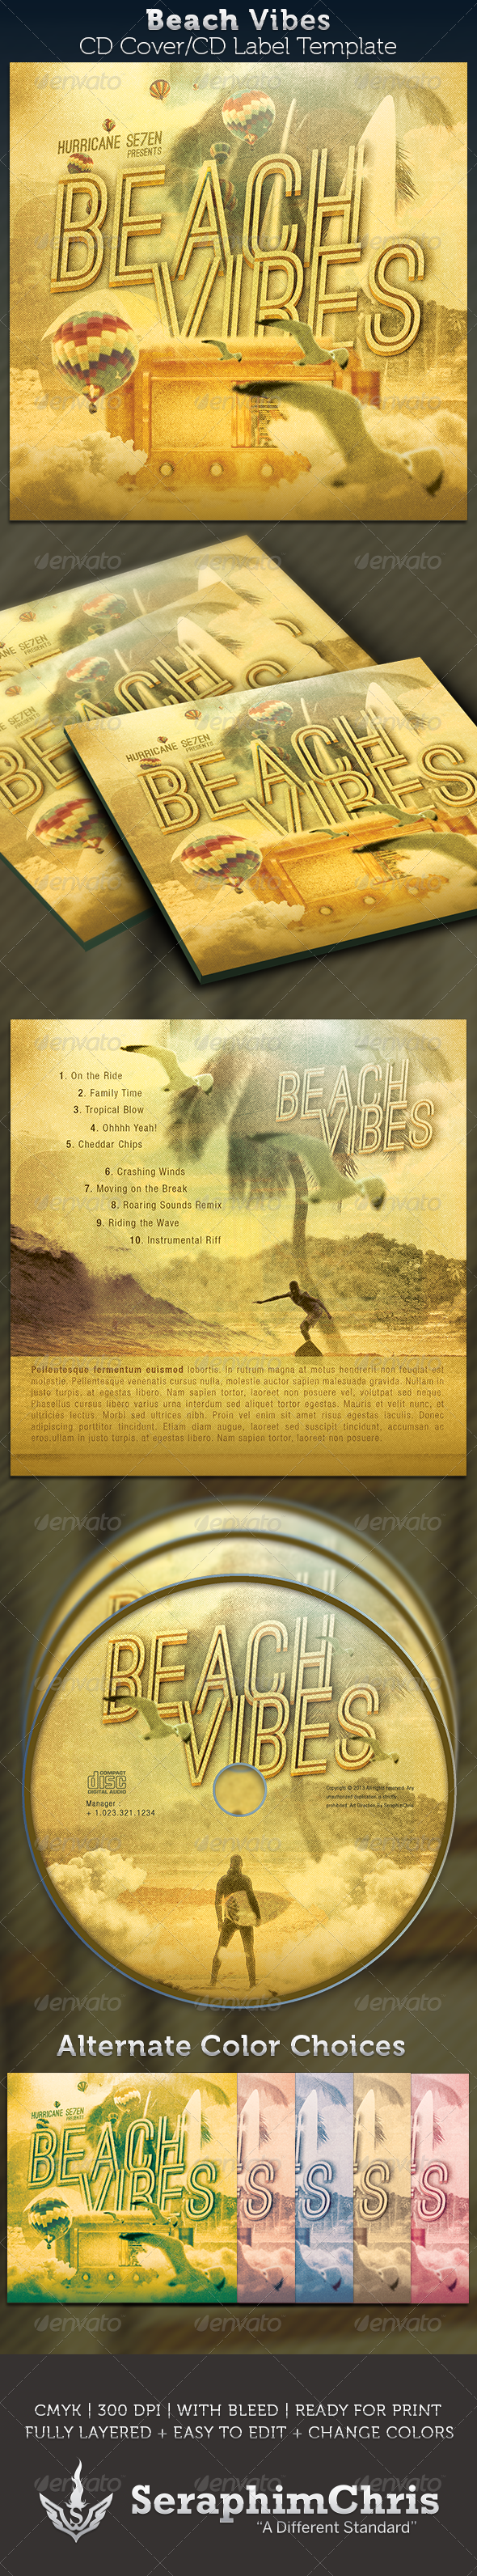 Beach Vibes CD Cover Artwork Template - CD & DVD Artwork Print Templates